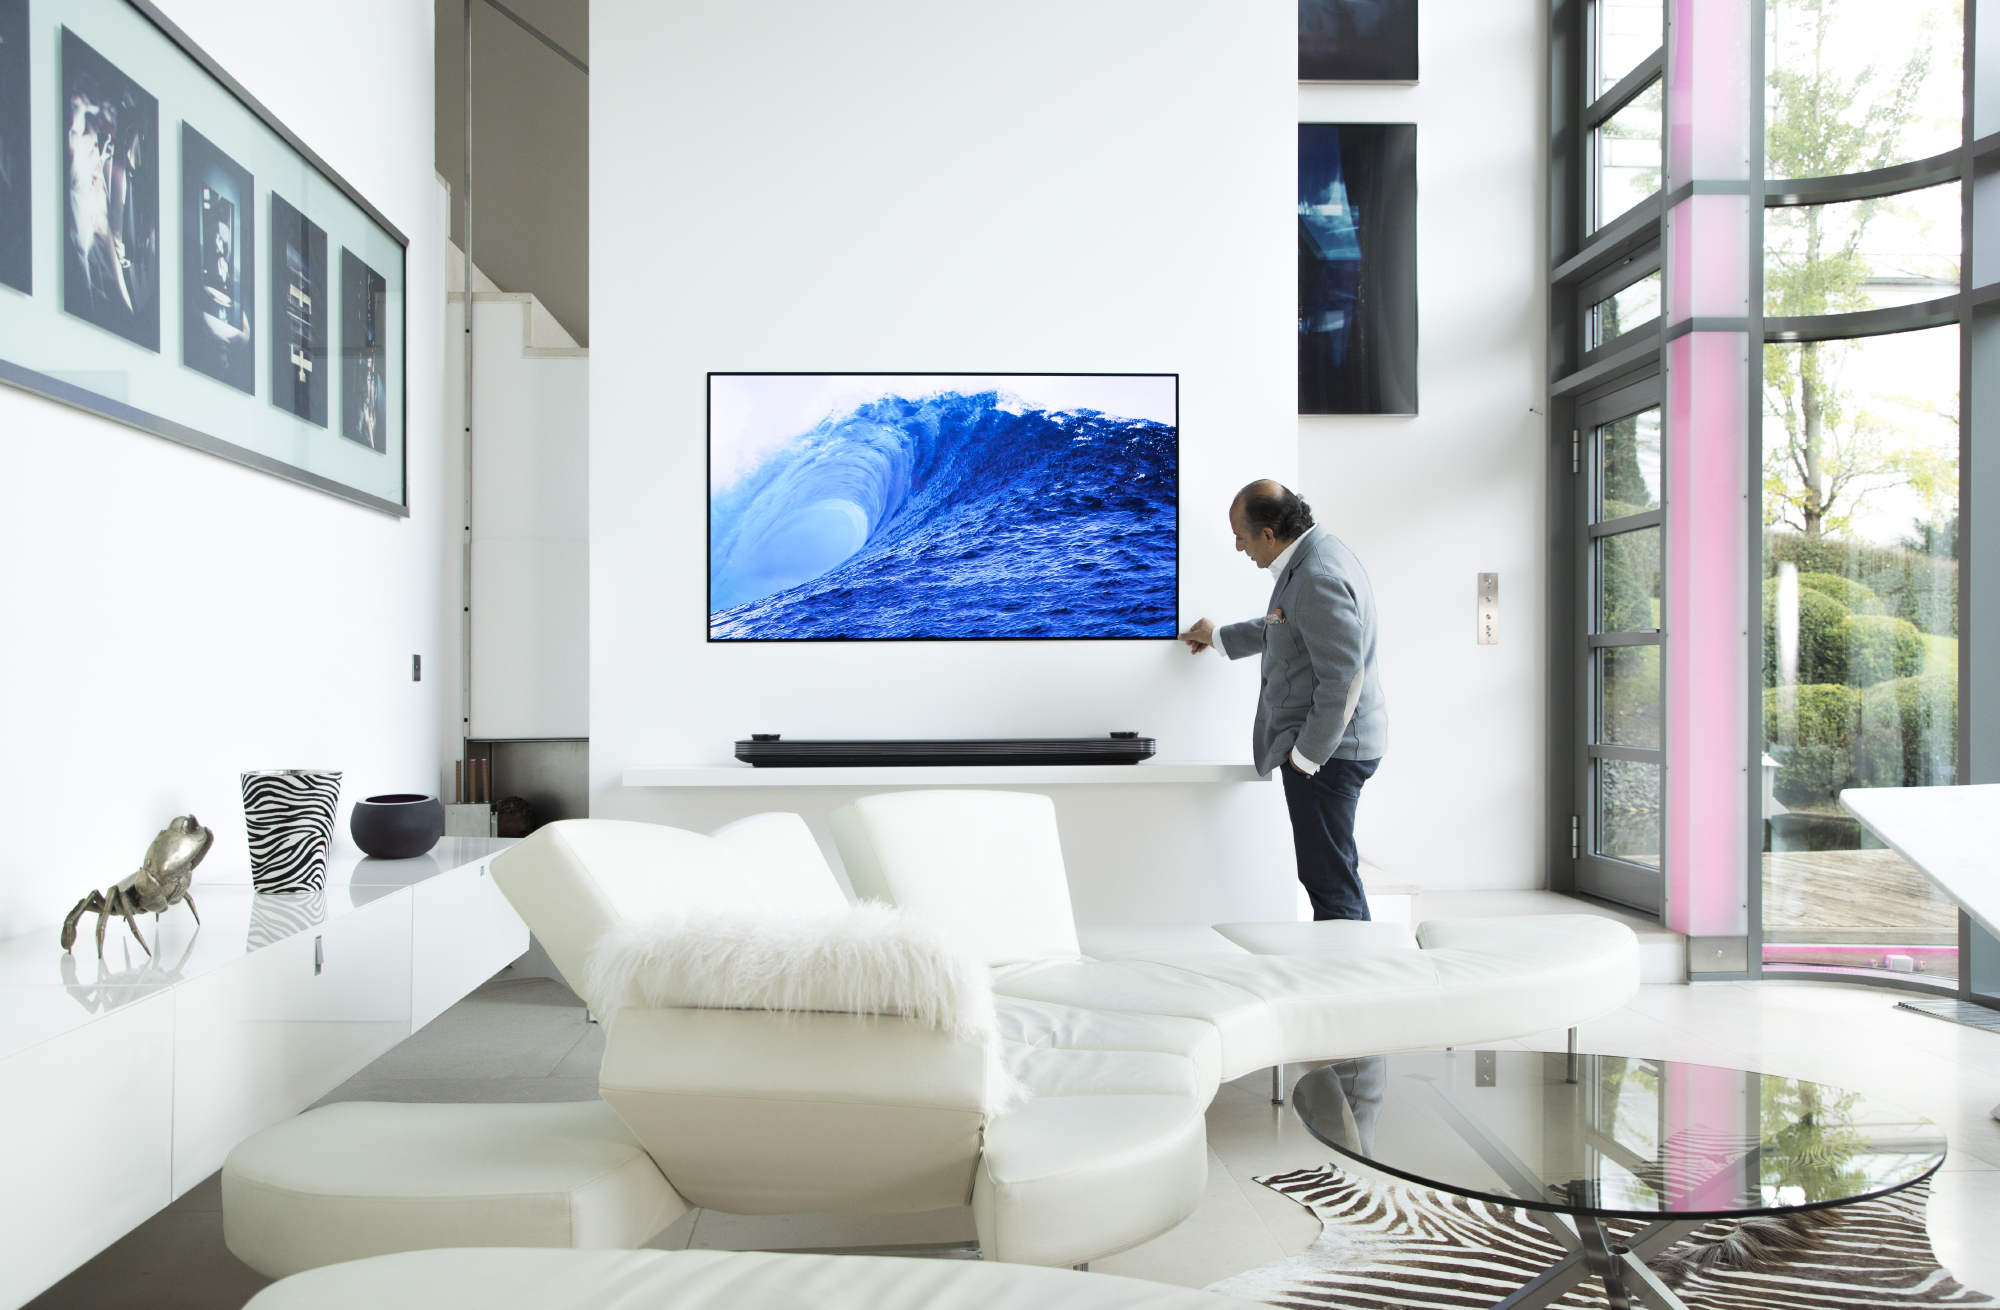 Lg signature universal appeal to interior designers and architects hadi teherani in the living room with the ultra flat lg signature oled tv offering biocorpaavc